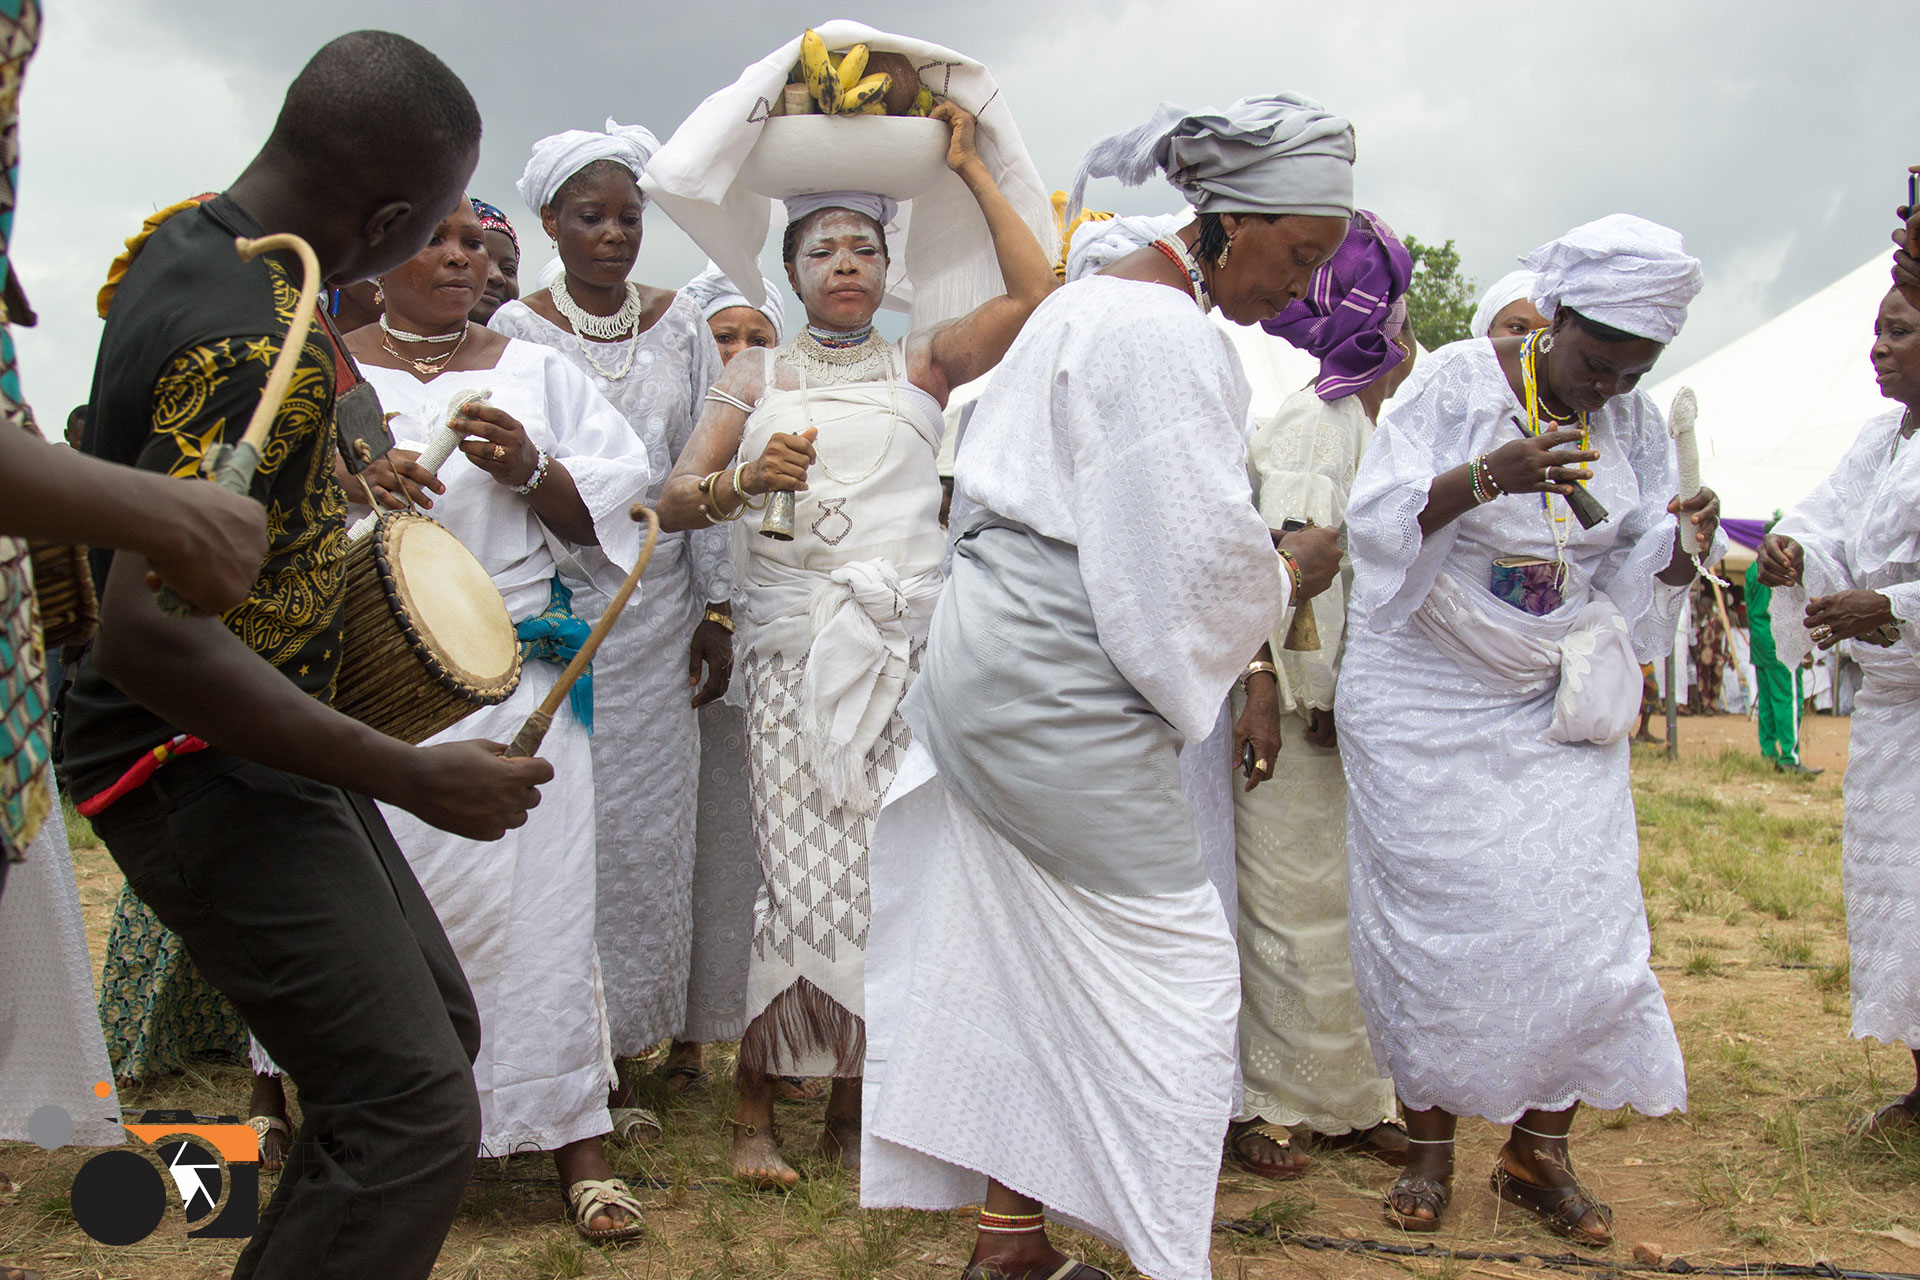 Osun Osogbo Festival Kicks Off Today: Here Are 6 Things